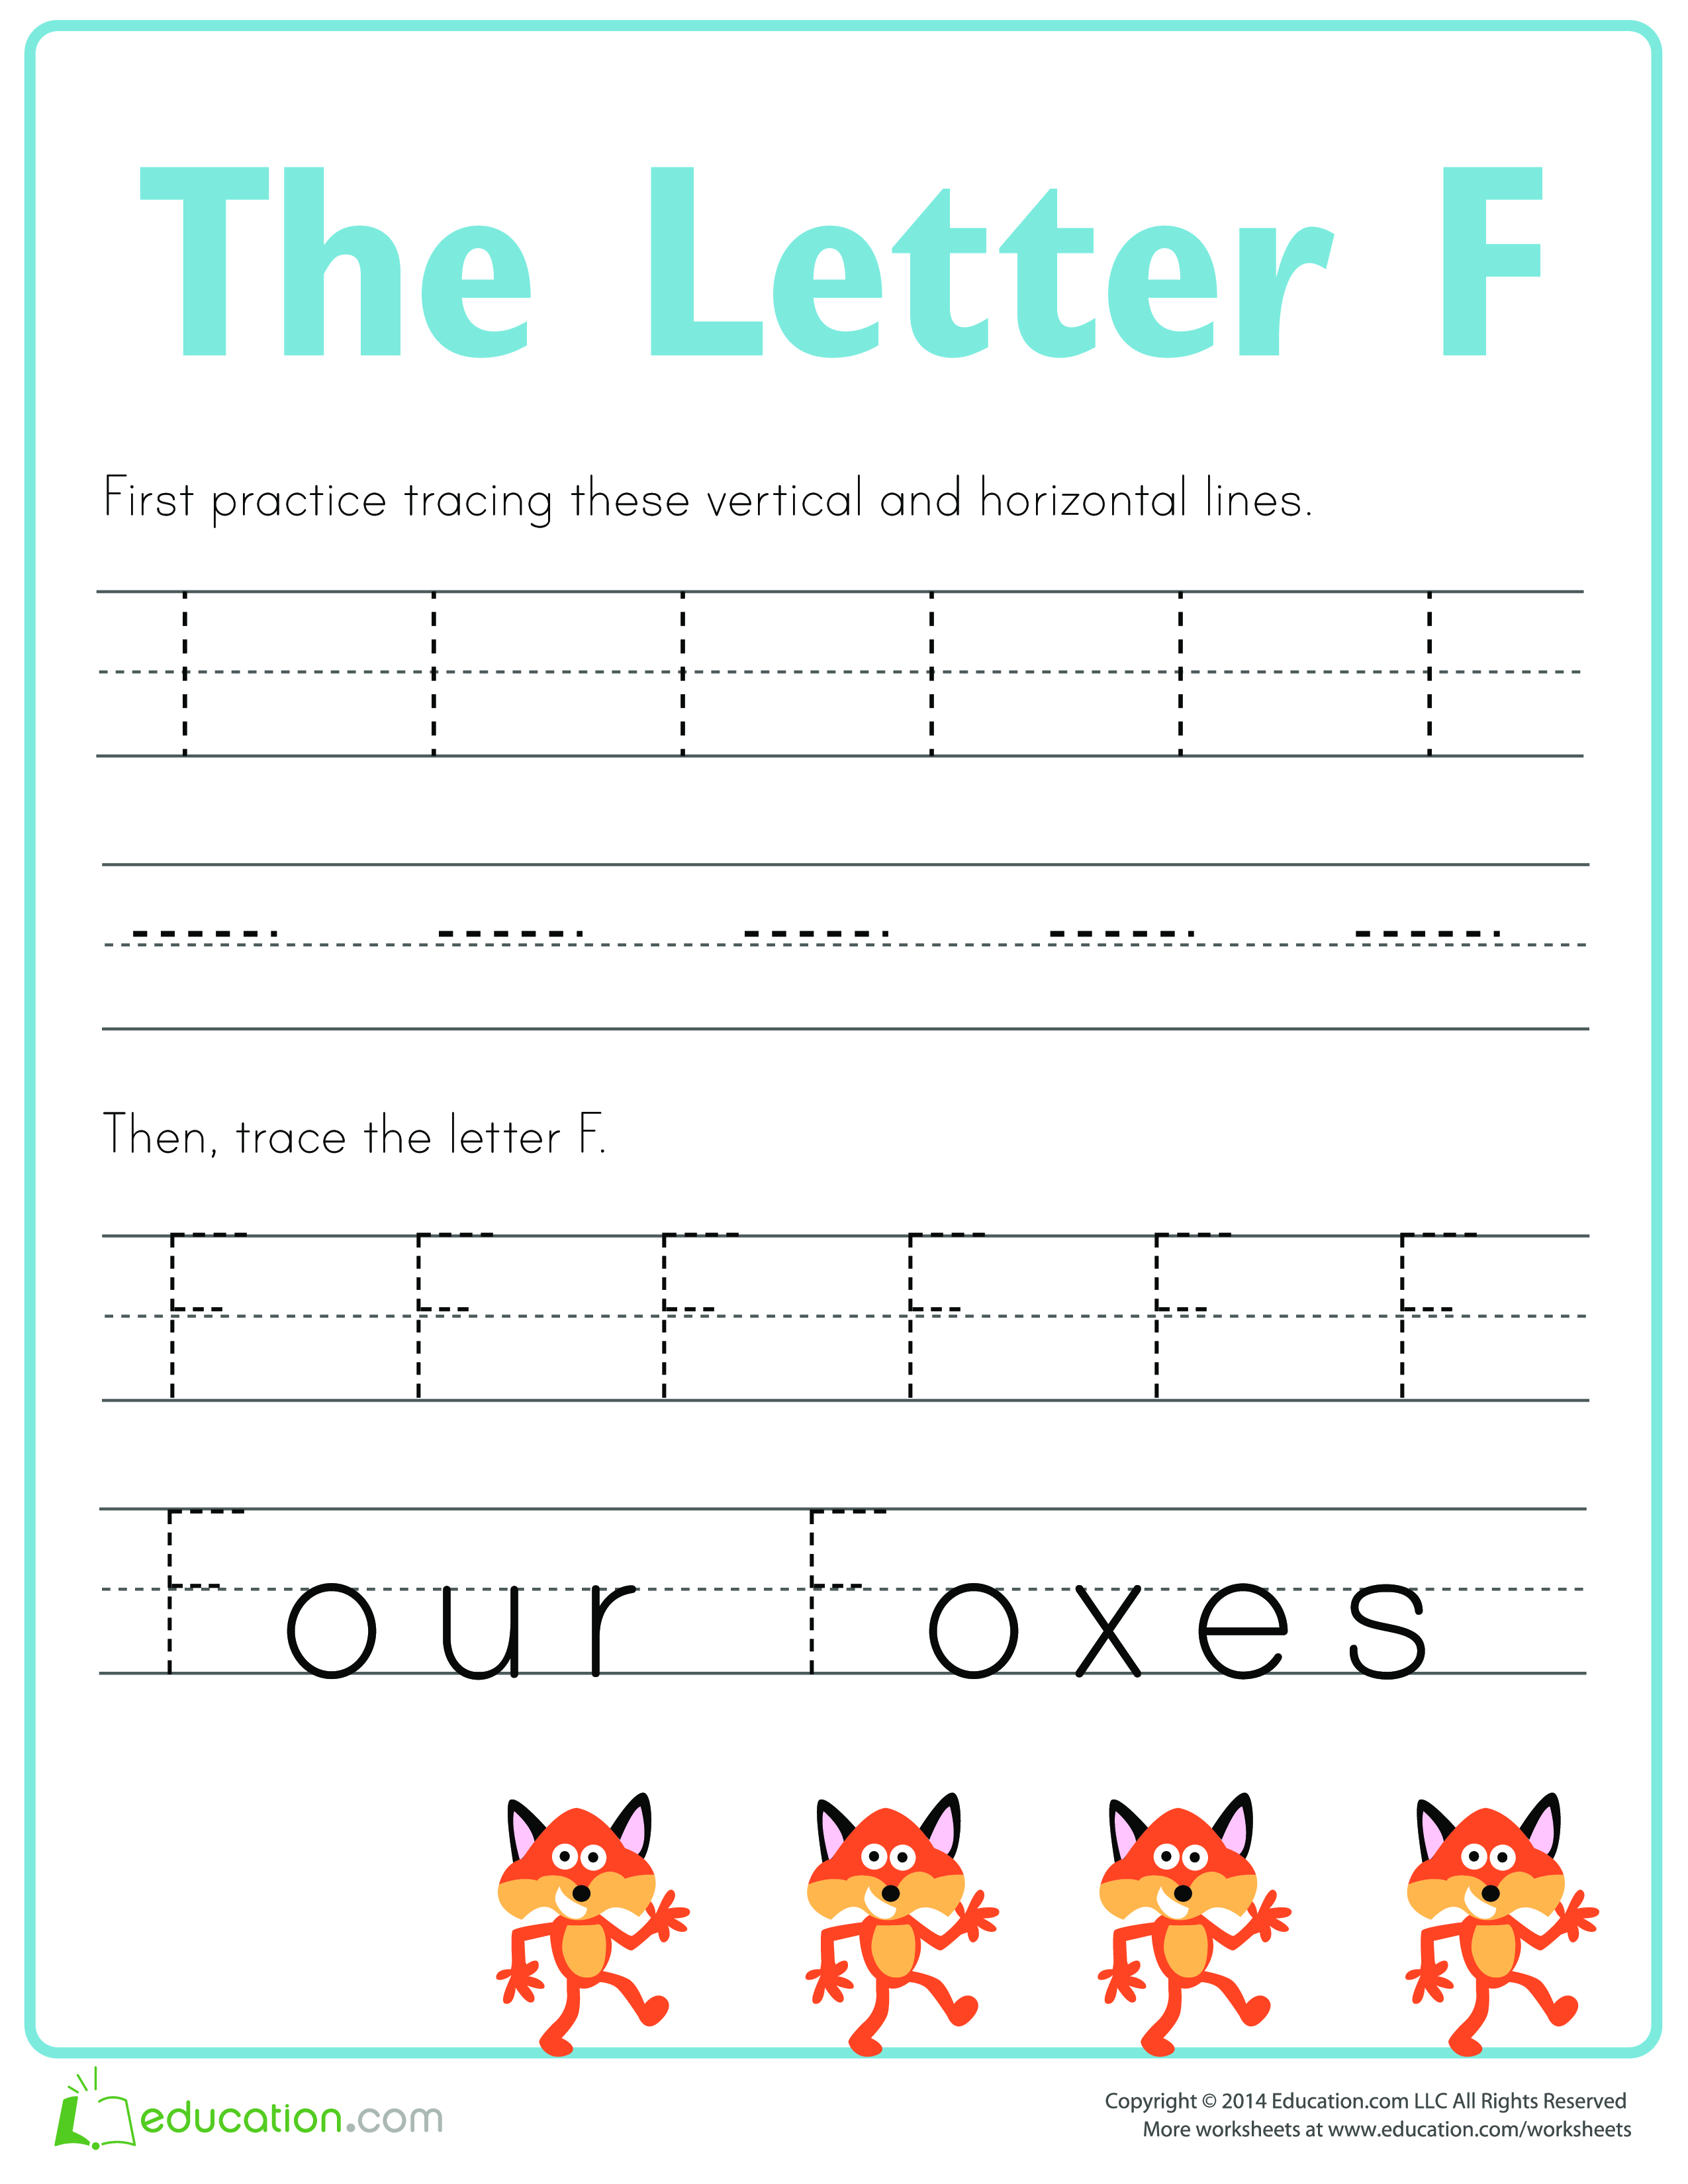 Free Practice To Write Letter F Templates At Allbusinesstemplates